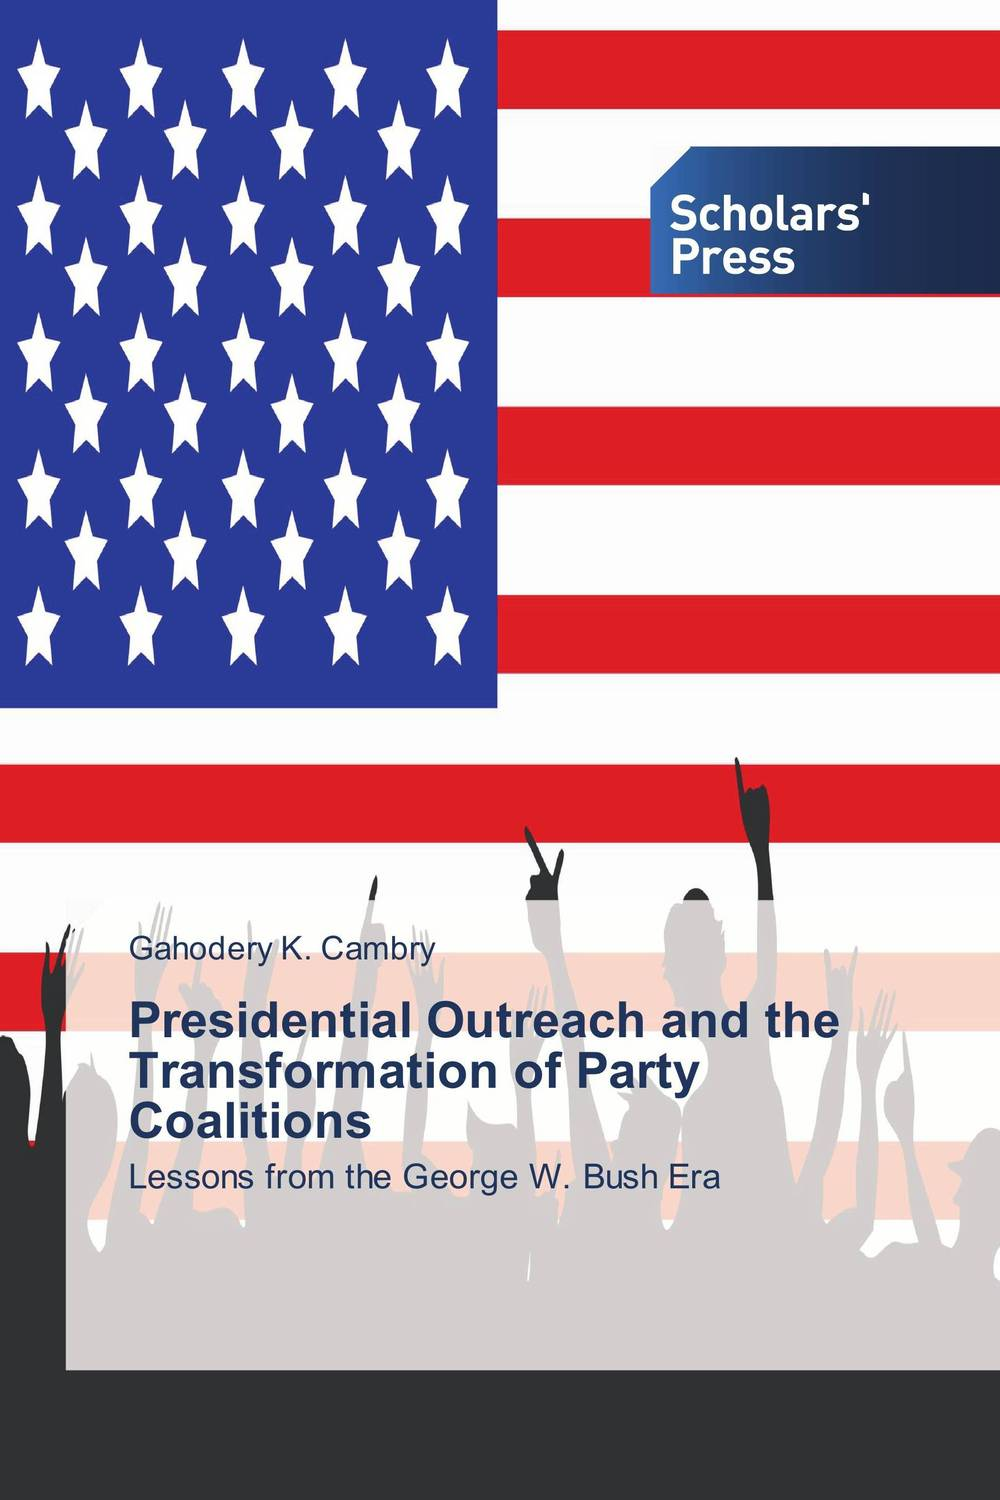 Presidential Outreach and the Transformation of Party Coalitions